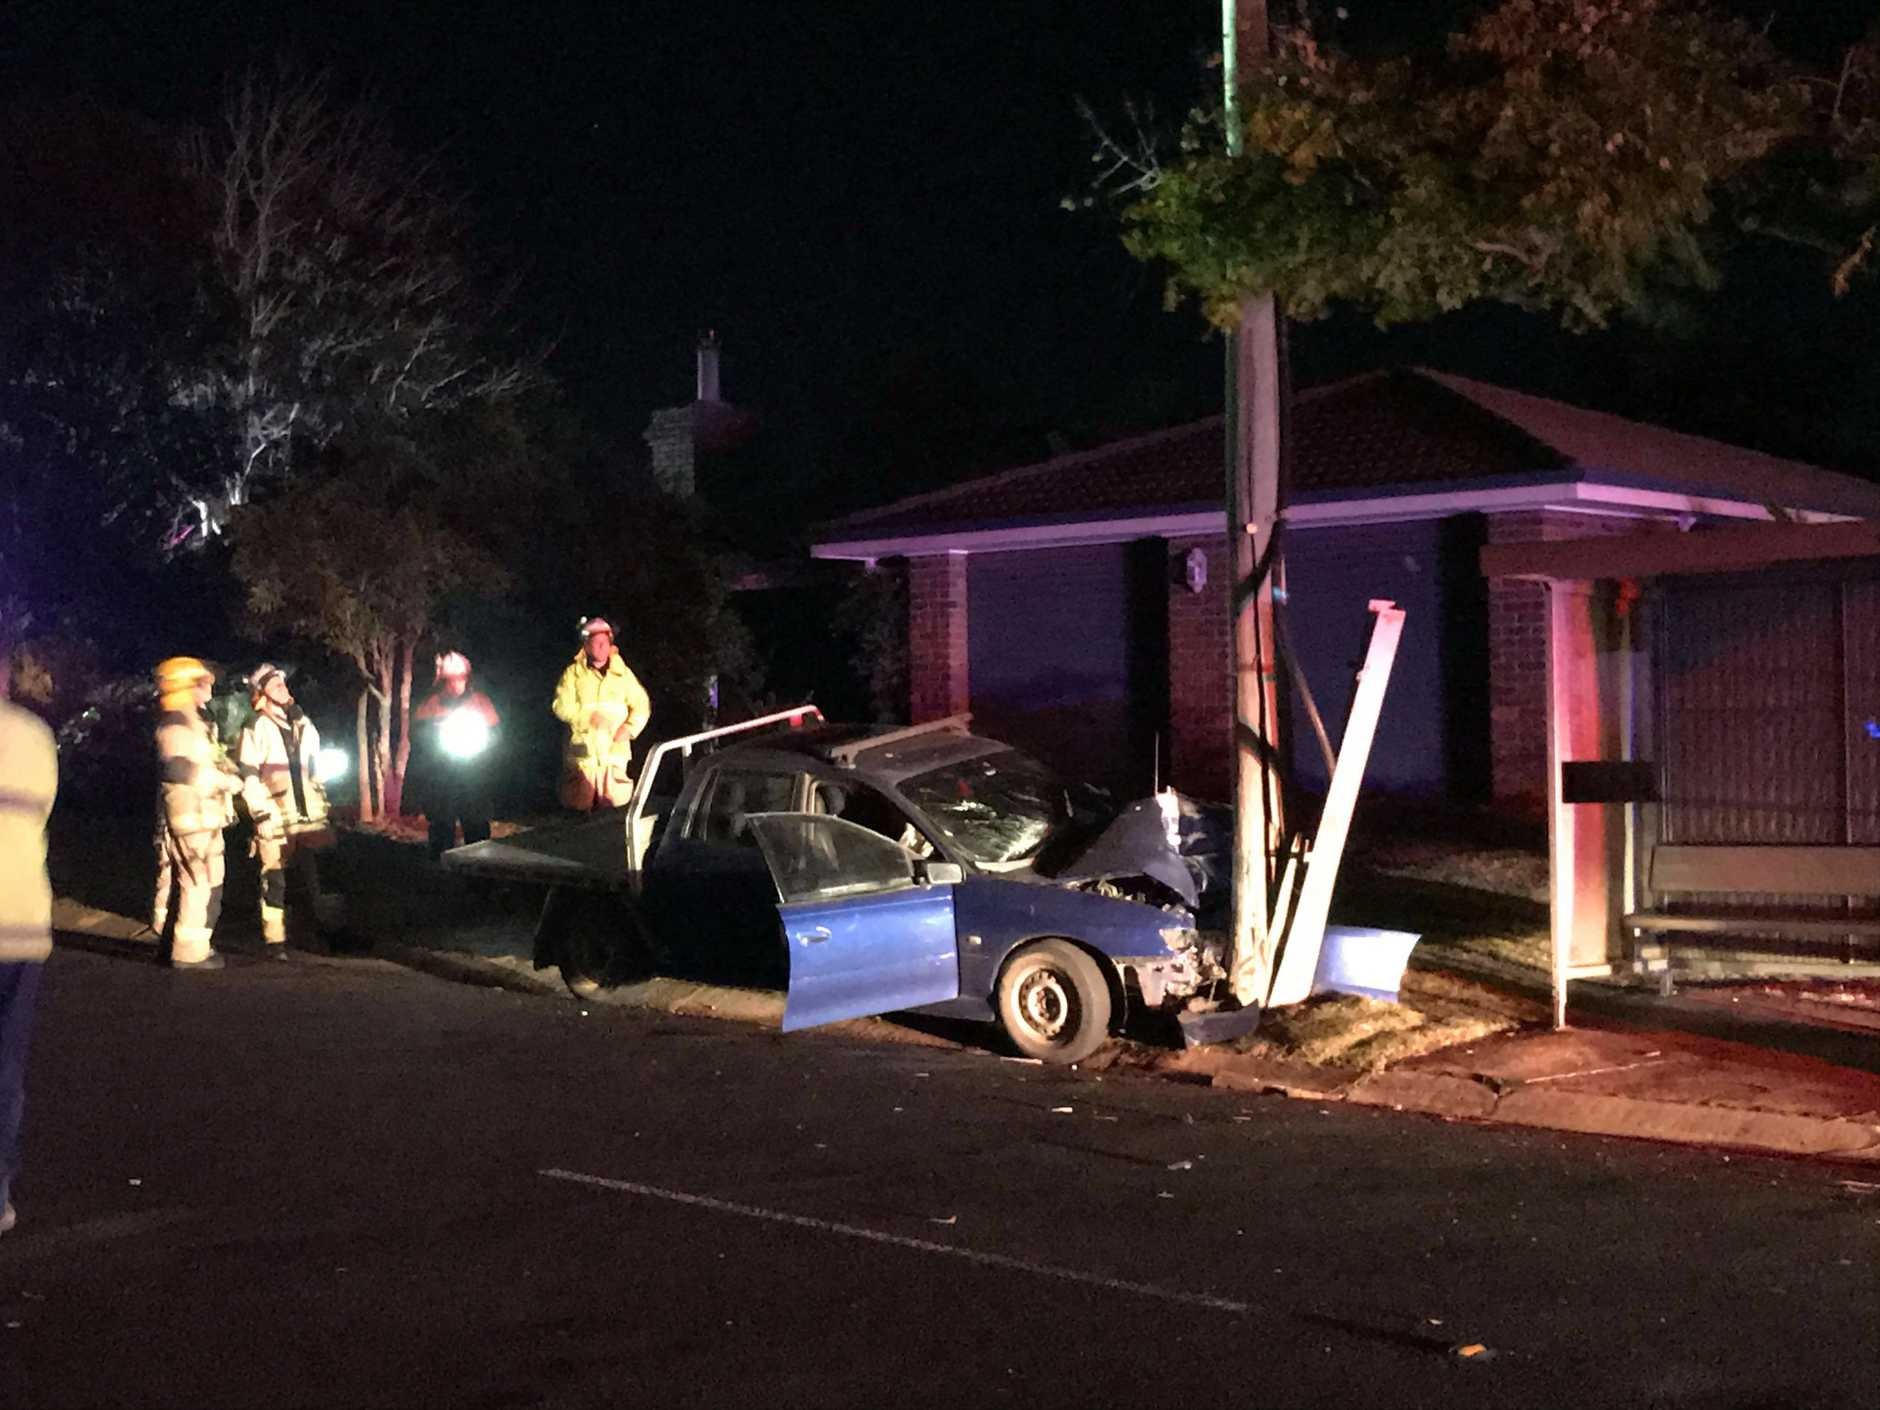 A resident snapped this photo of the scene after a car crashed into a power pole last night. Photo: Jess Ryder.